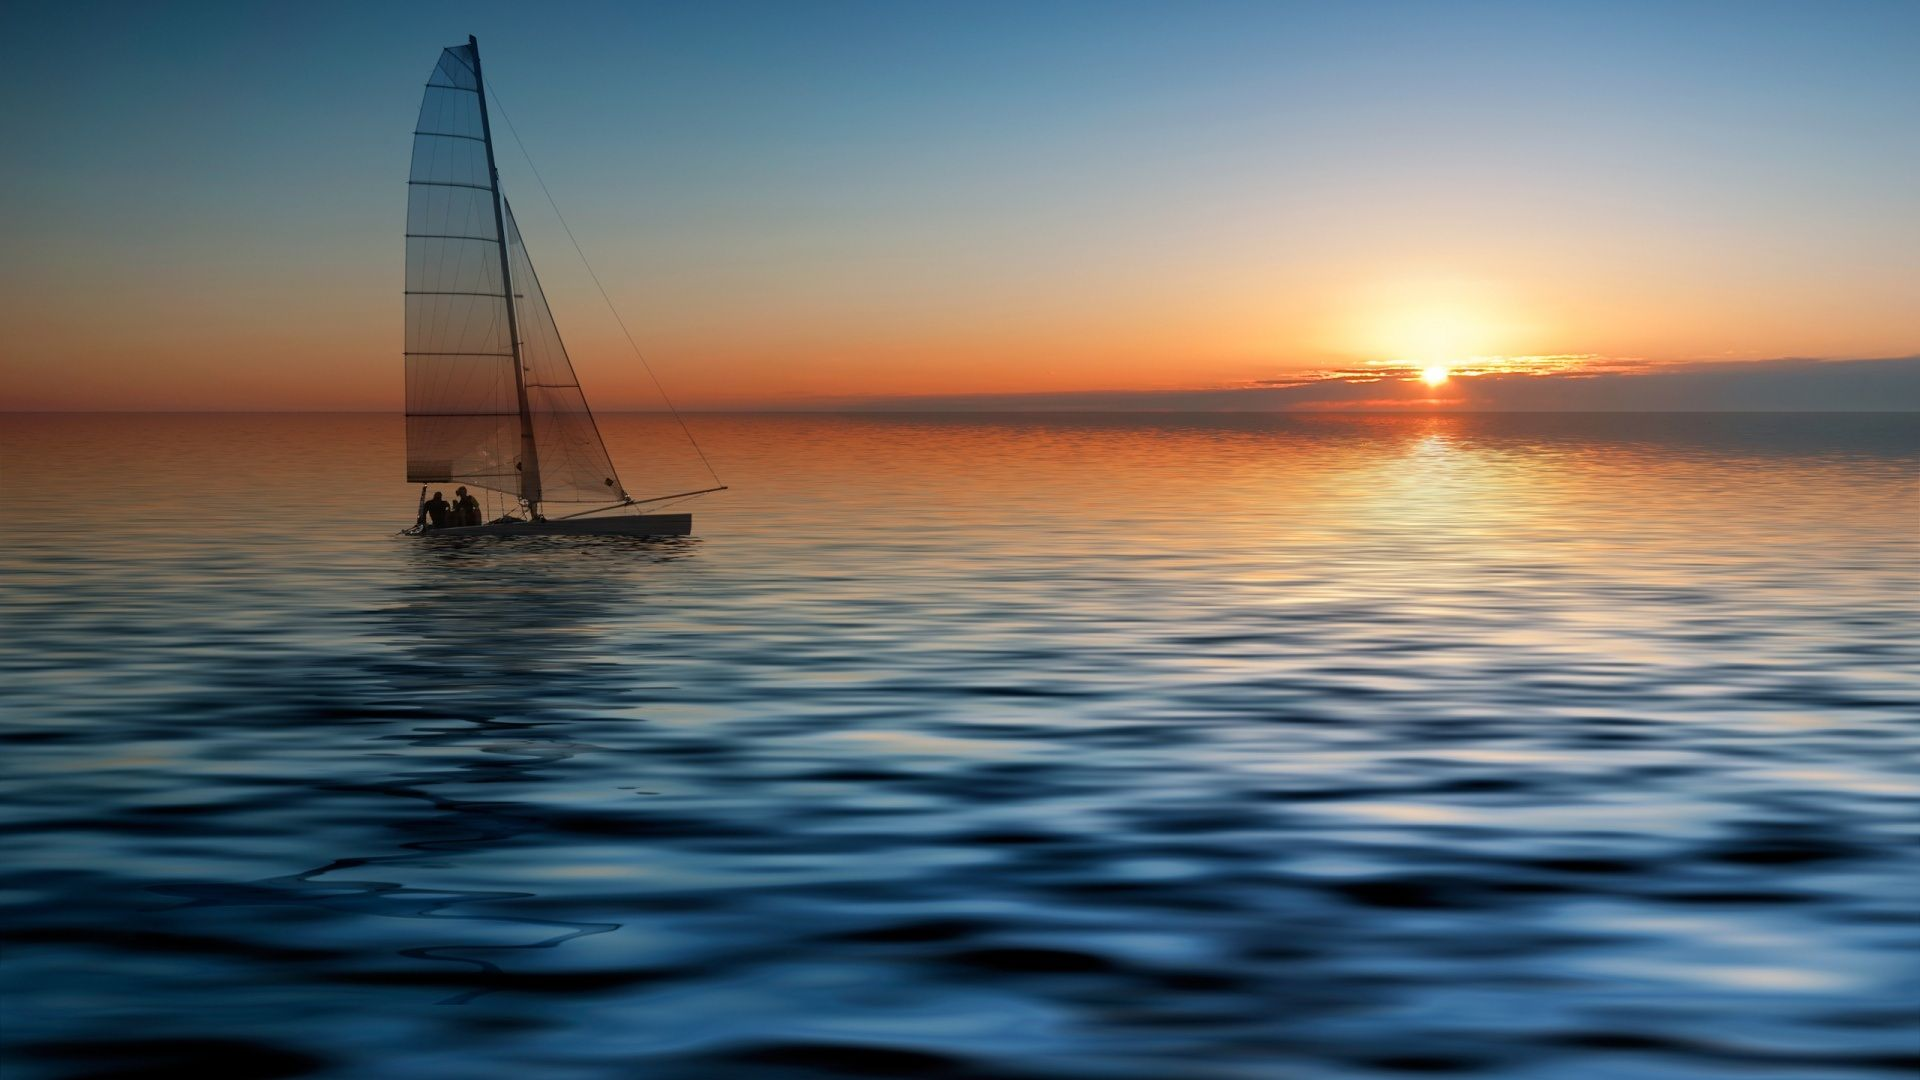 Pictures Of Sailboats On The Ocean Boat Wallpaper Sunset